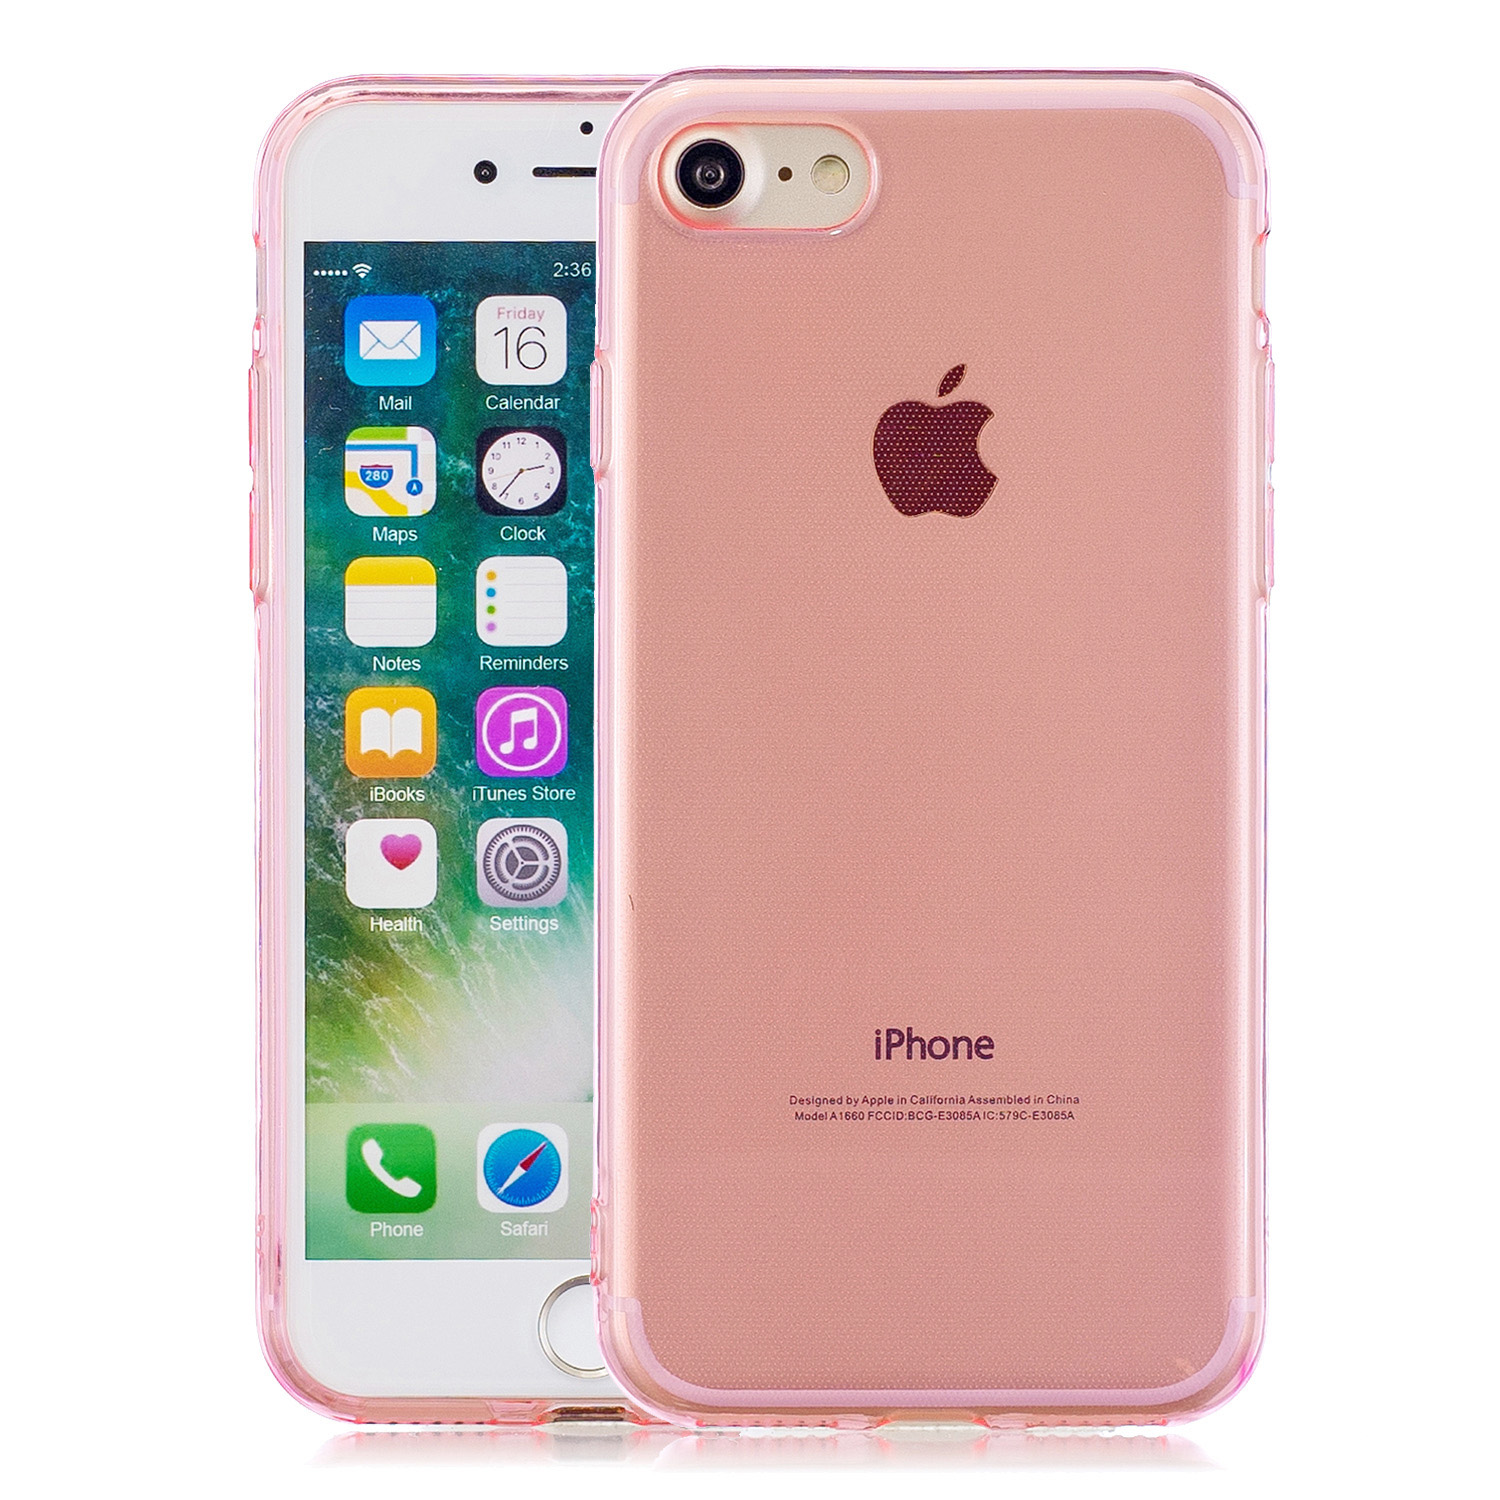 for iPhone 6/6S / 6 Plus/6S Plus / 7/8 / 7 Plus/8 Plus Clear Colorful TPU Back Cover Cellphone Case Shell Pink